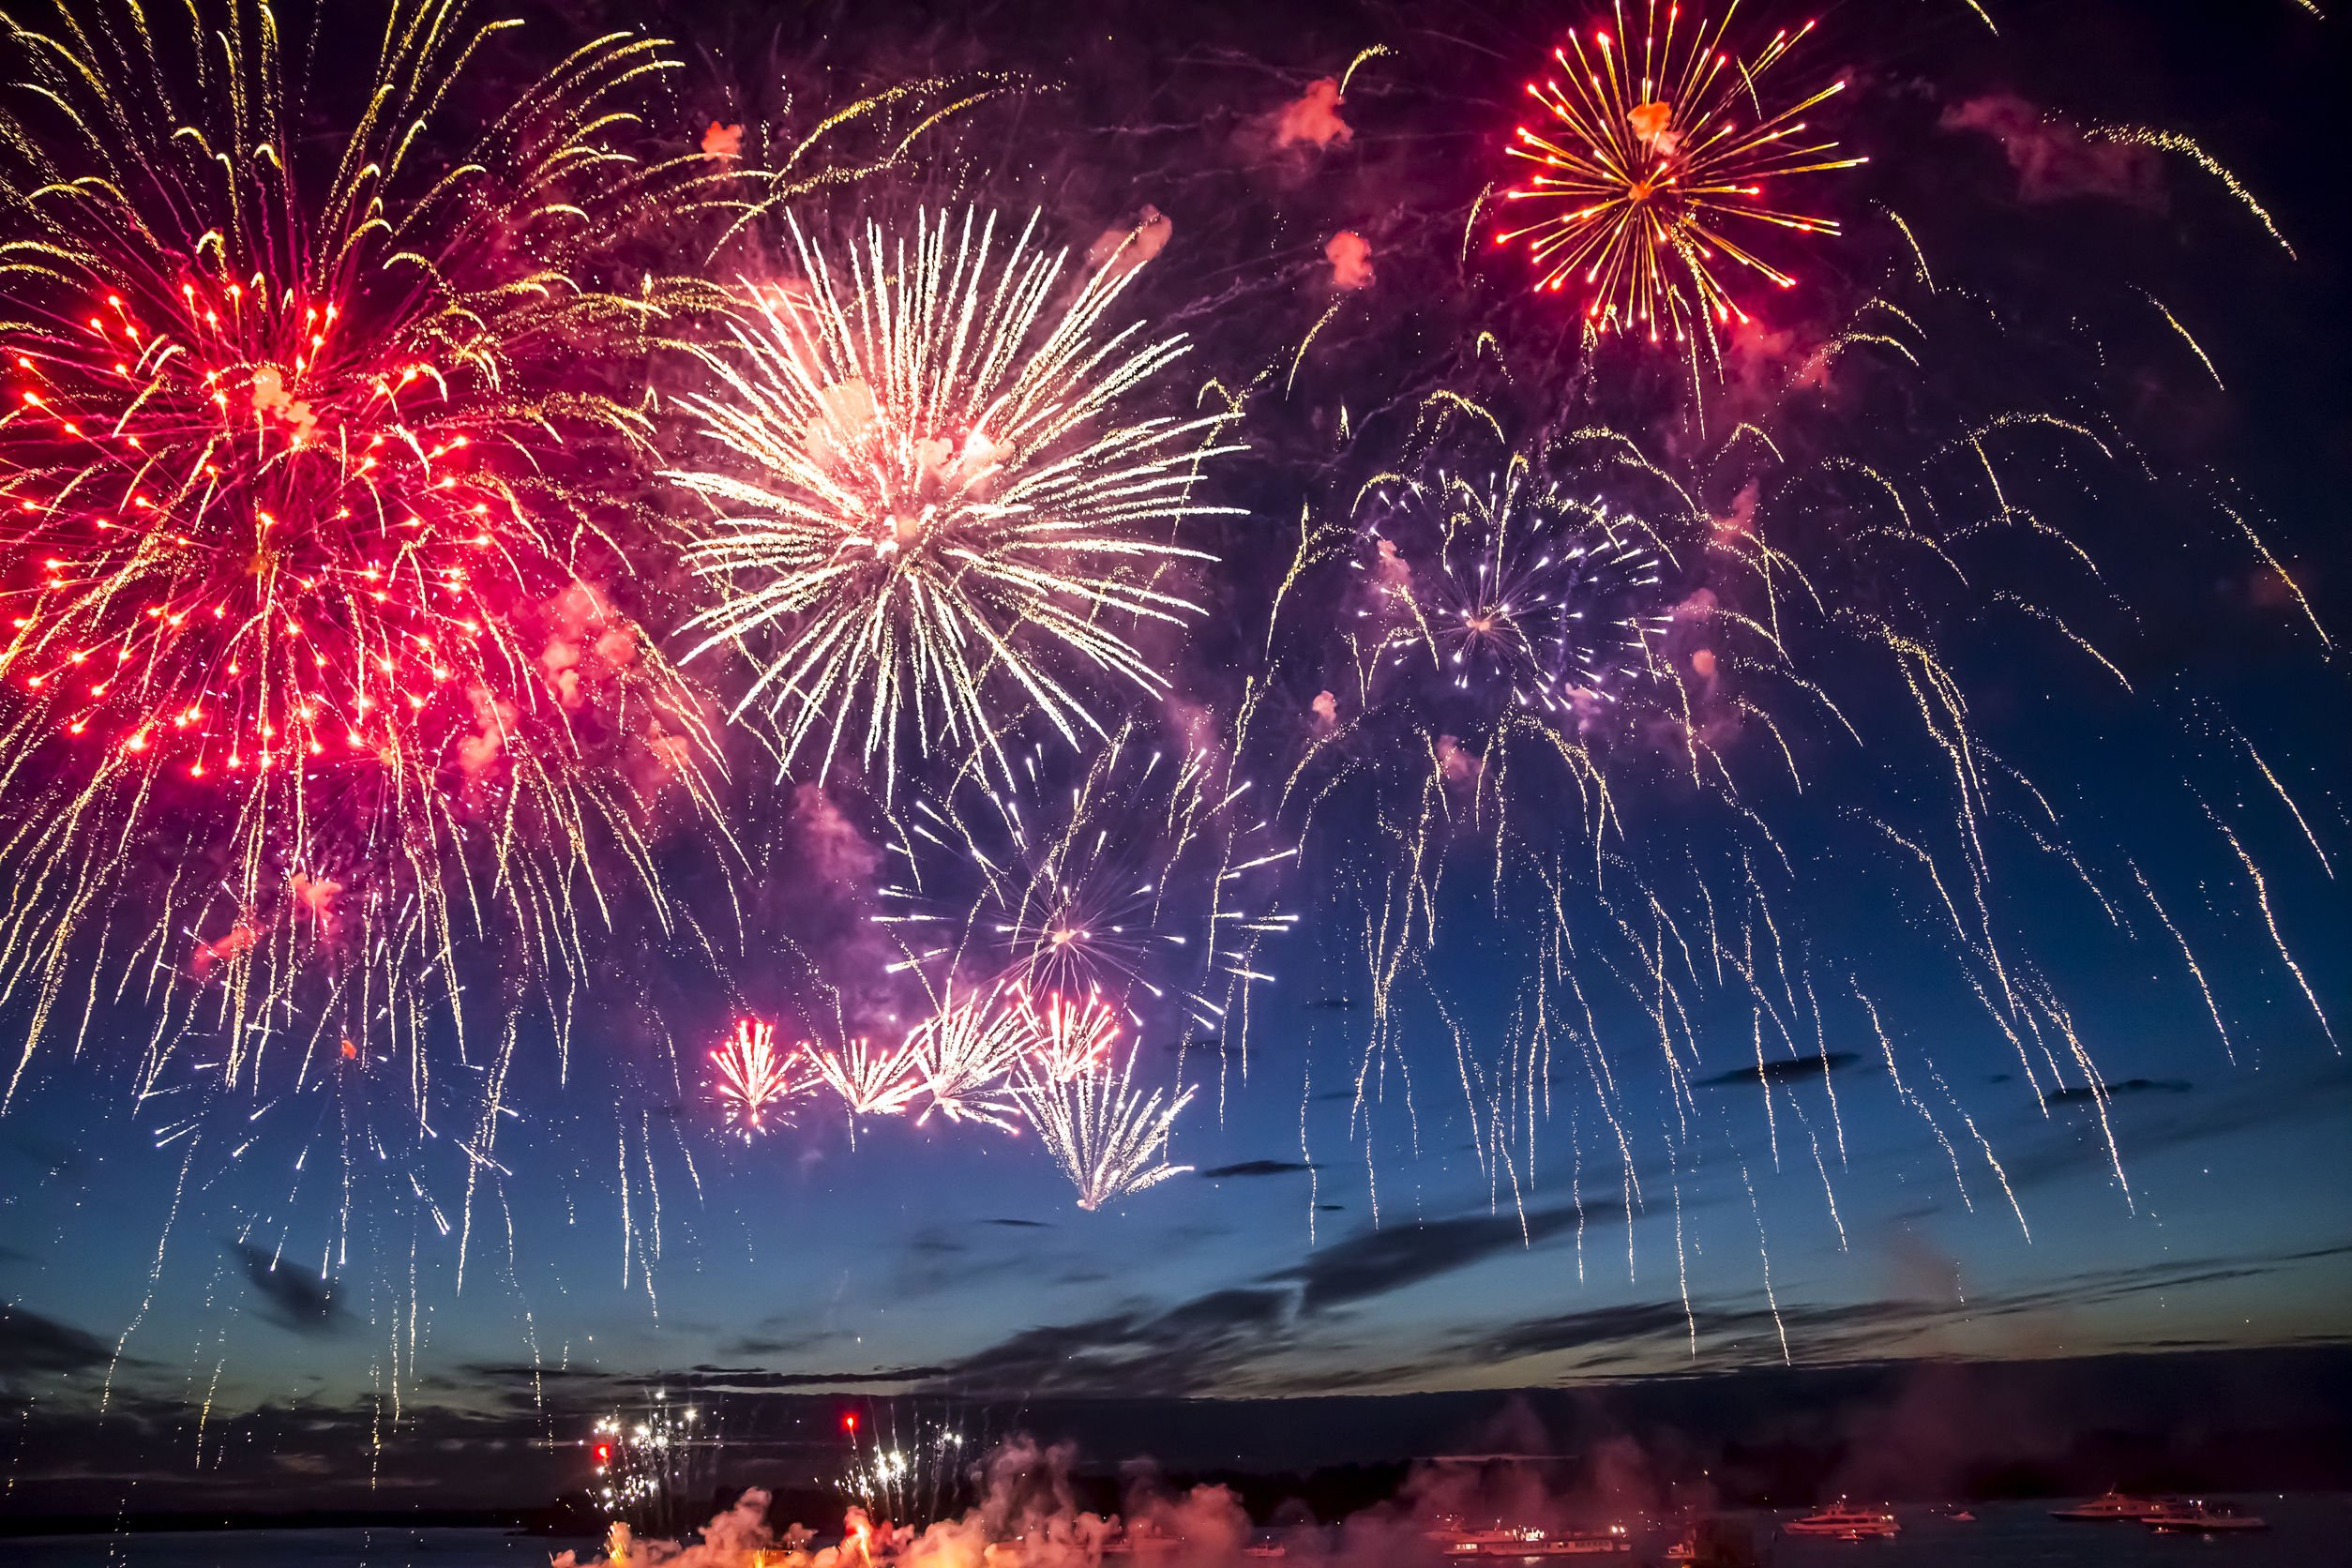 Where to watch fireworks in Panama City Beach Florida - 4th of July